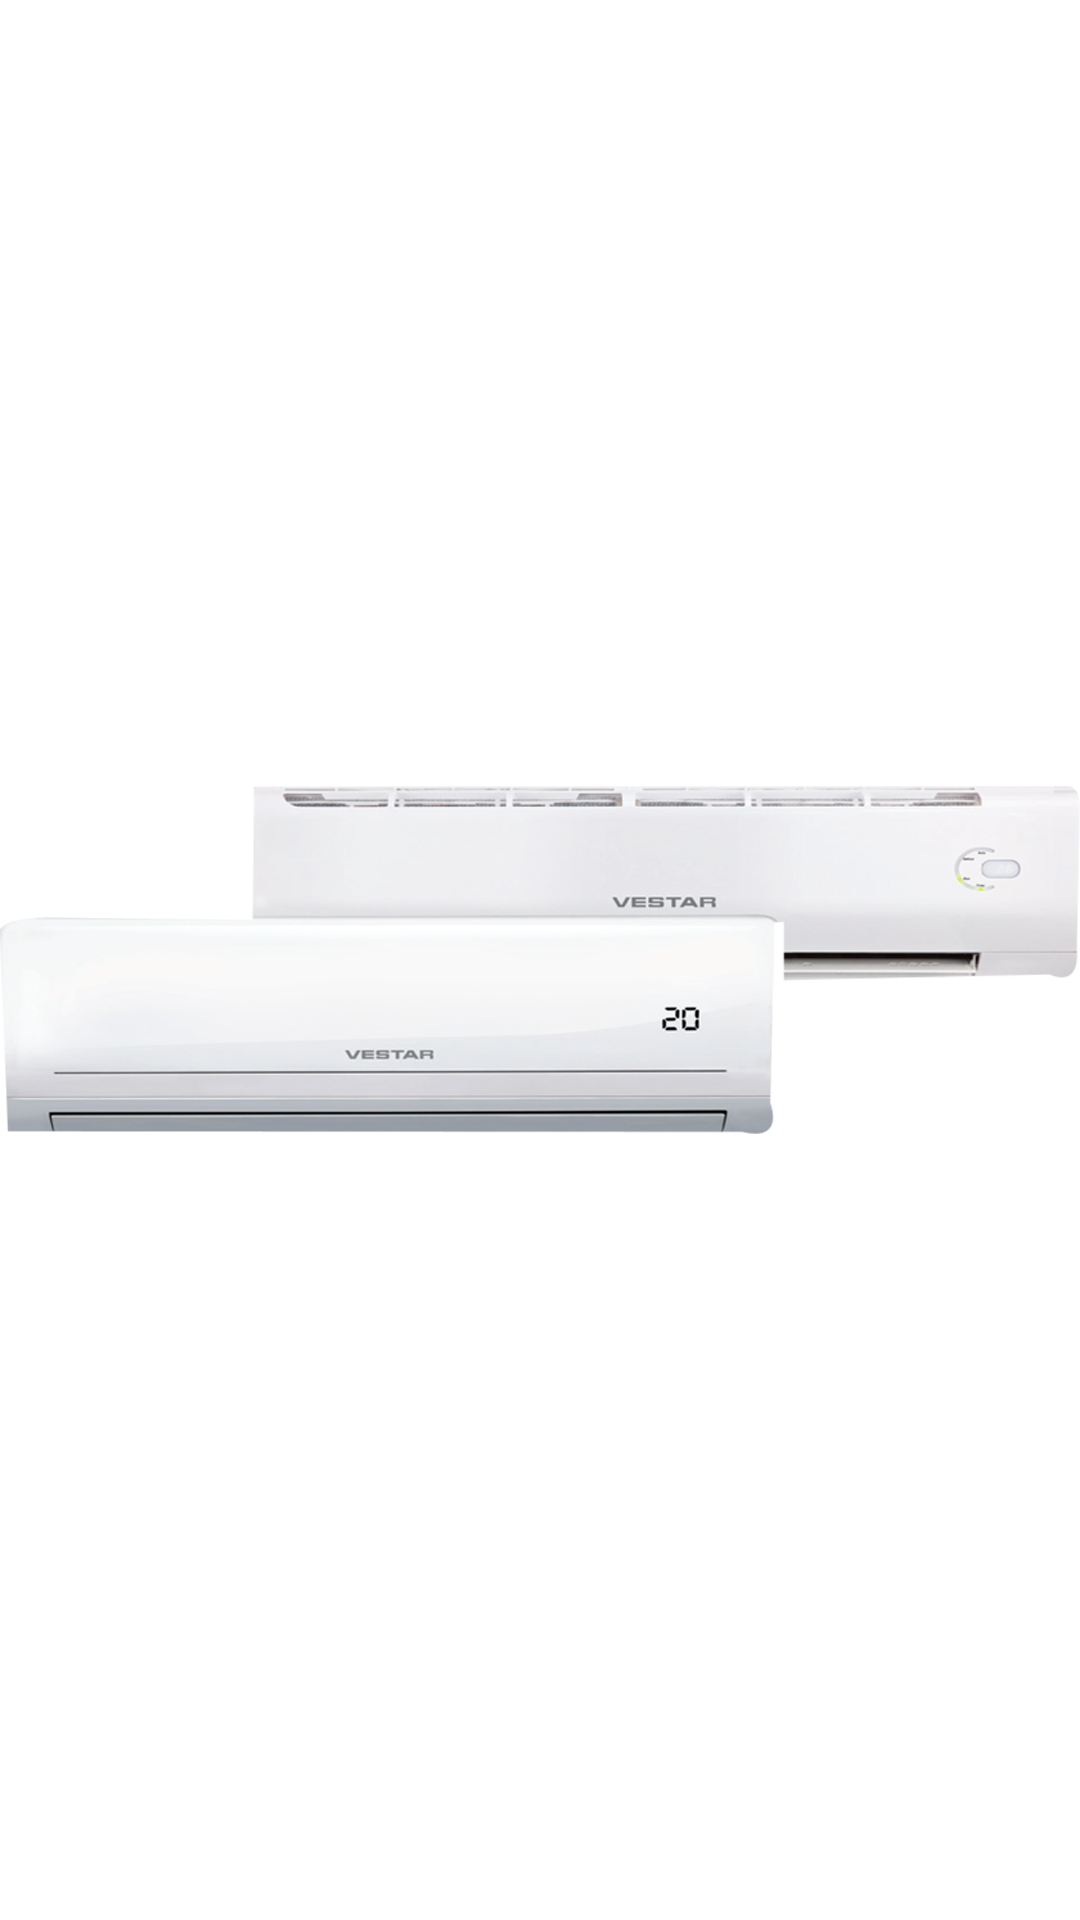 Vestar VASN122168T 1 Ton 2 Star Split Air Conditioner